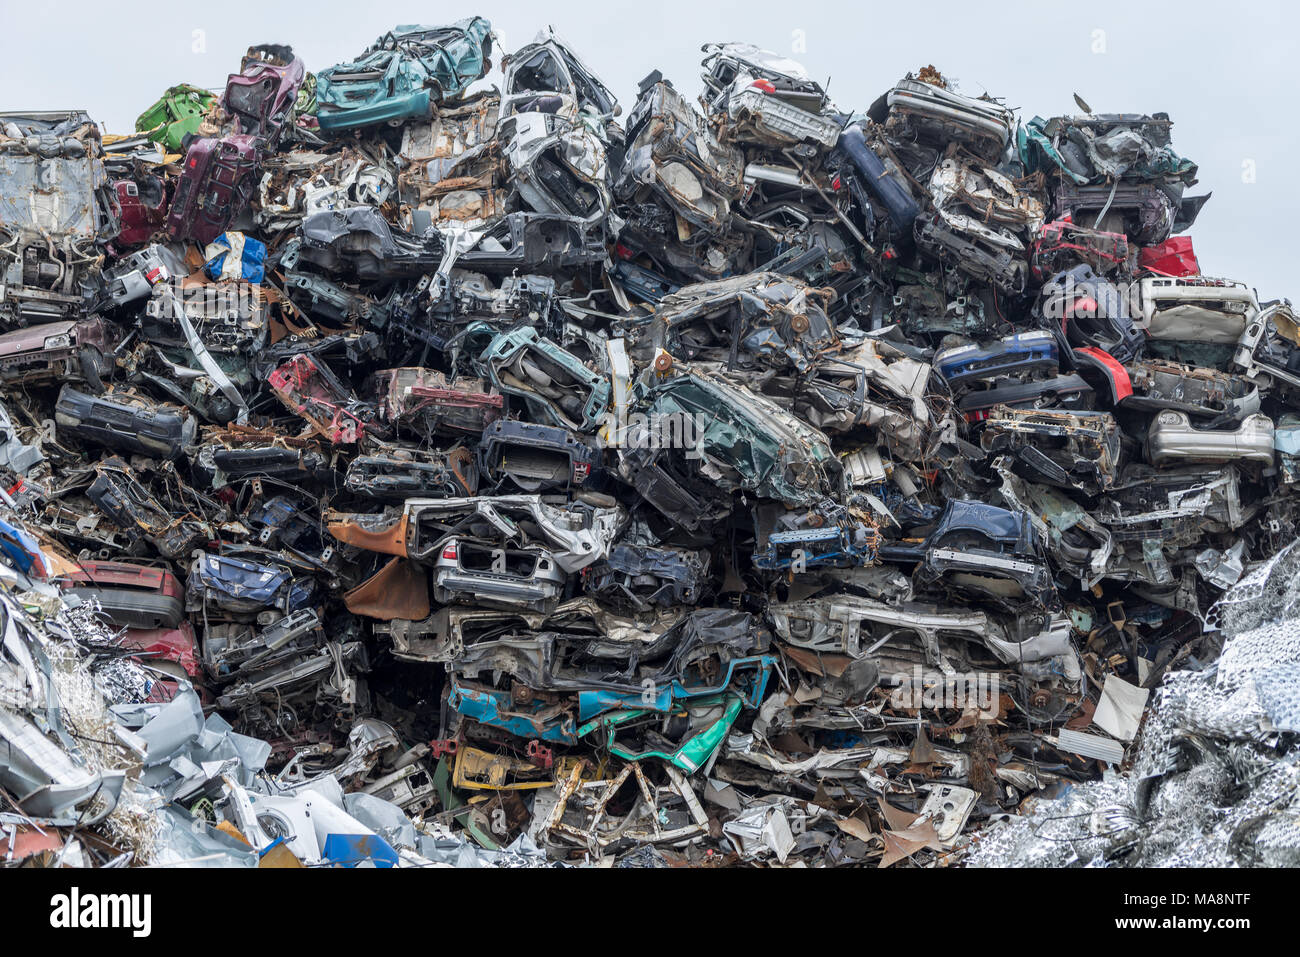 Abandoned Cars In Scrap Yard Stock Photos & Abandoned Cars In Scrap ...